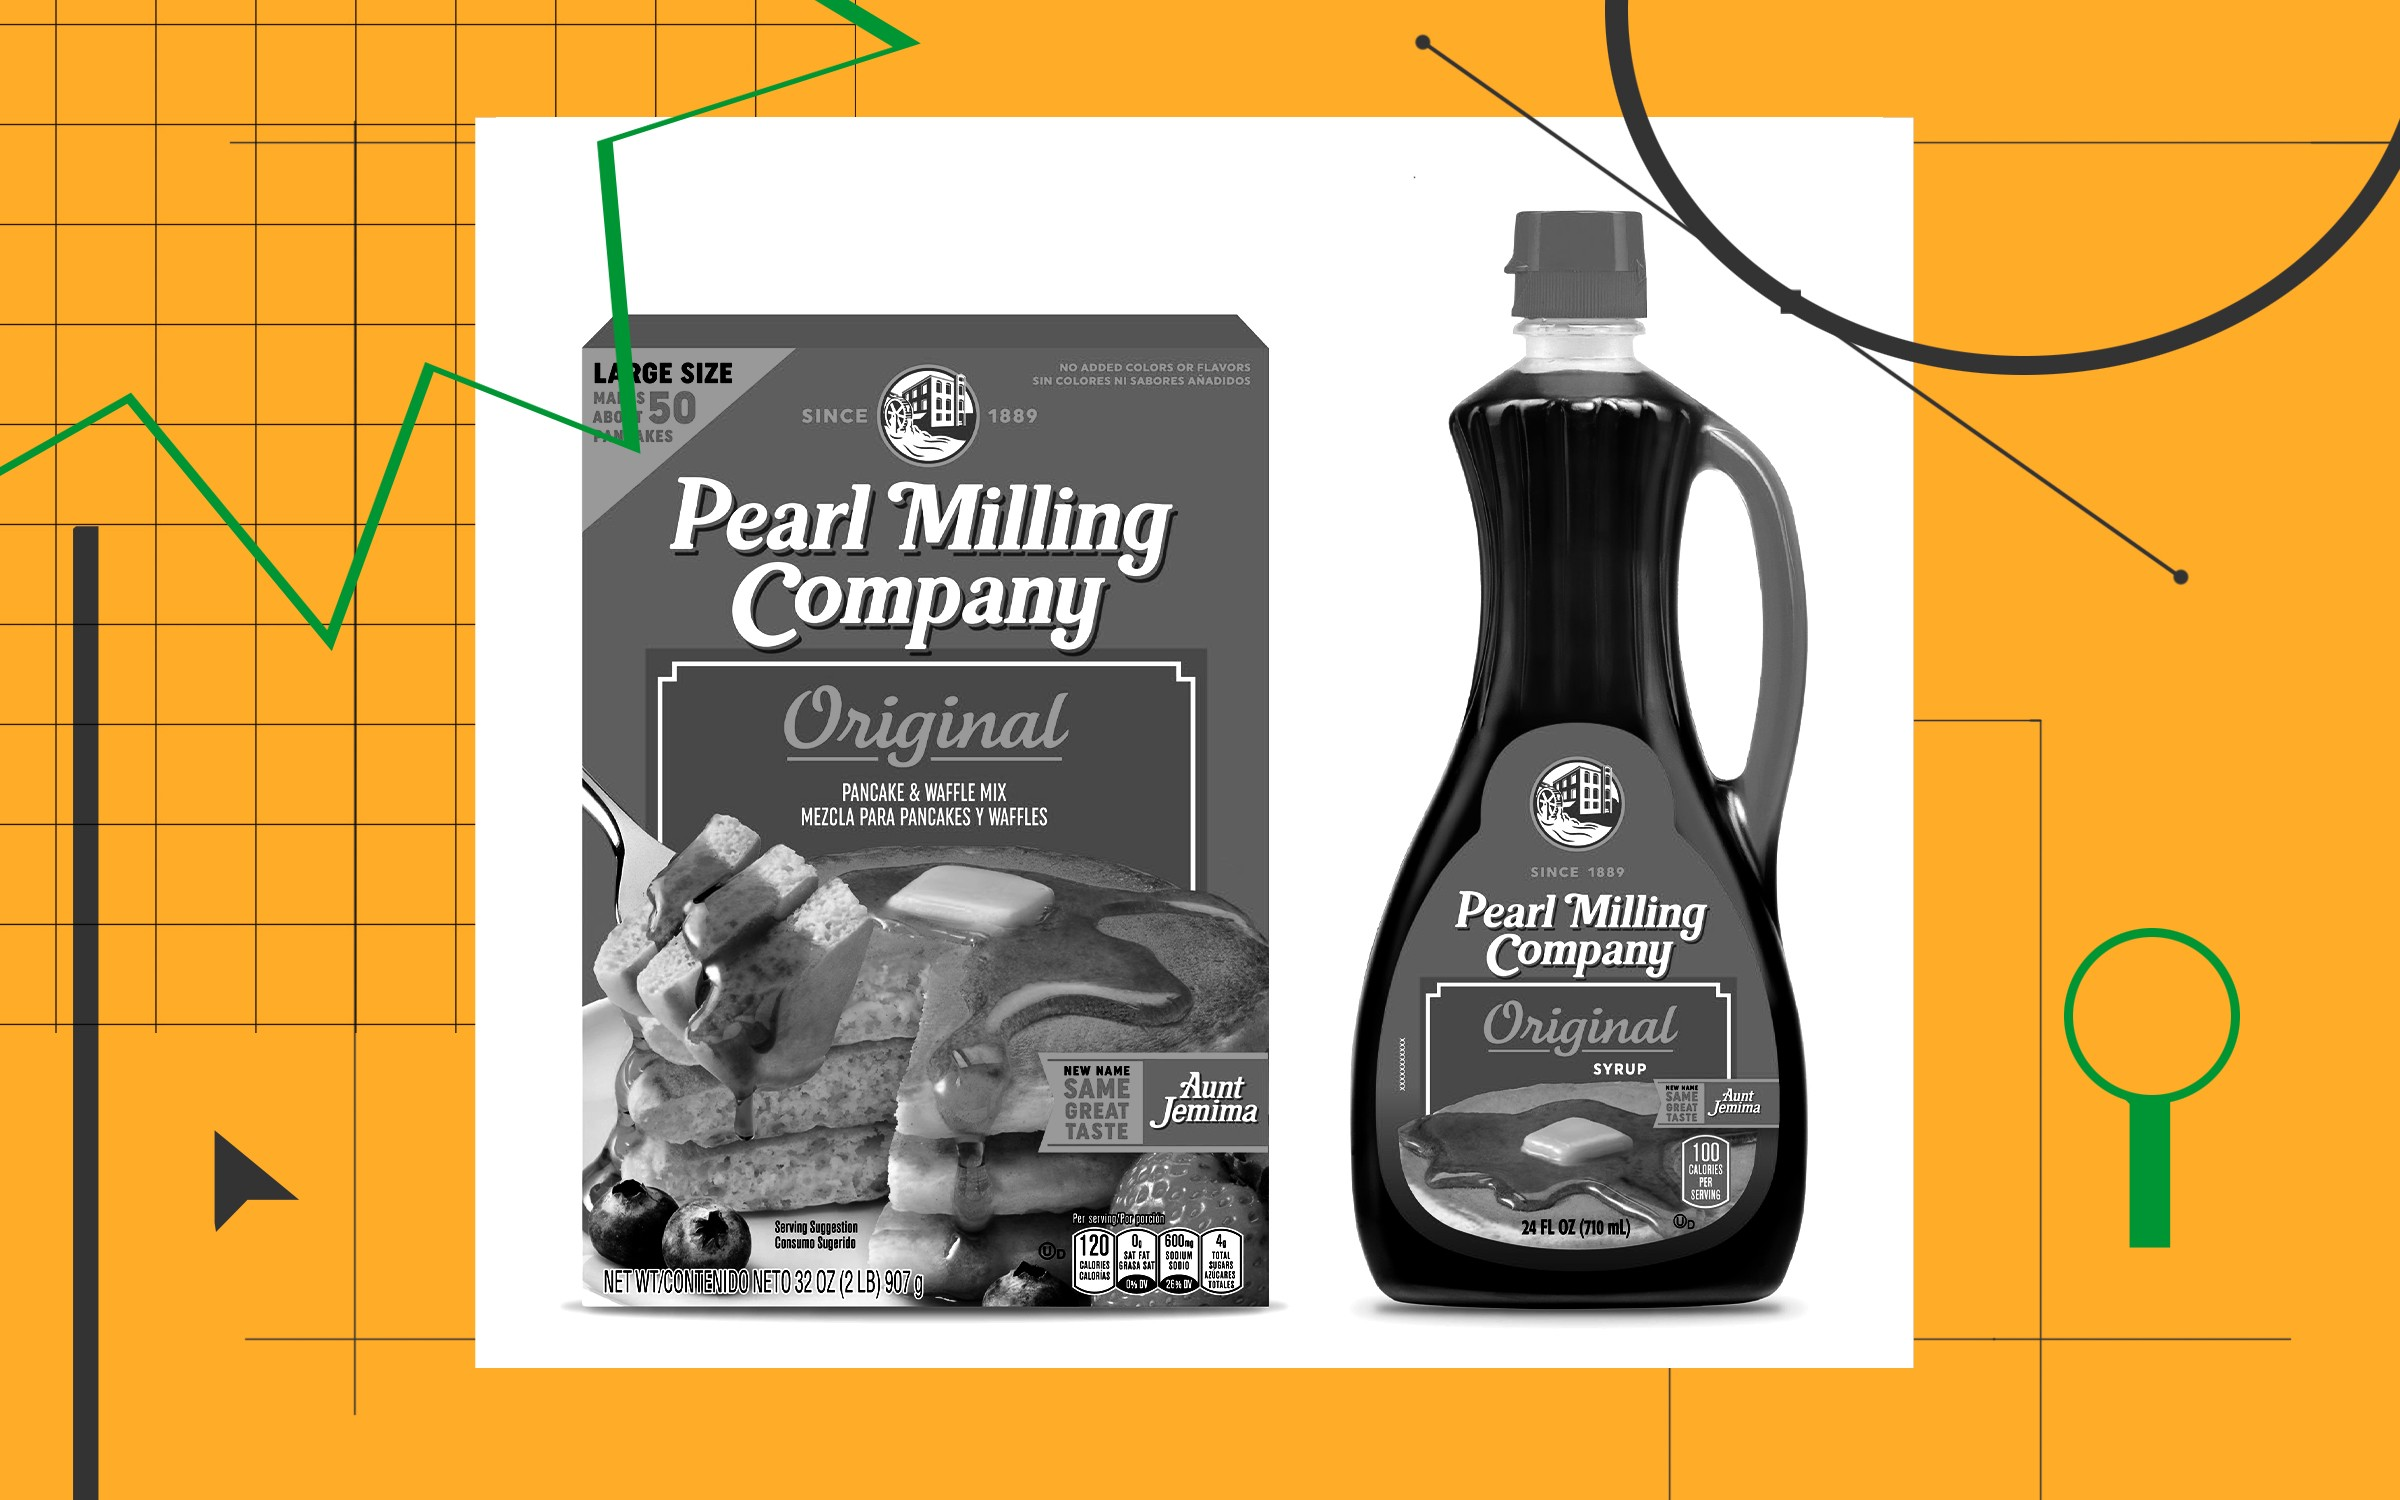 A photo illustration with different line textures around a box of Pearl Milling Company pancake mix and a bottle of its syrup.